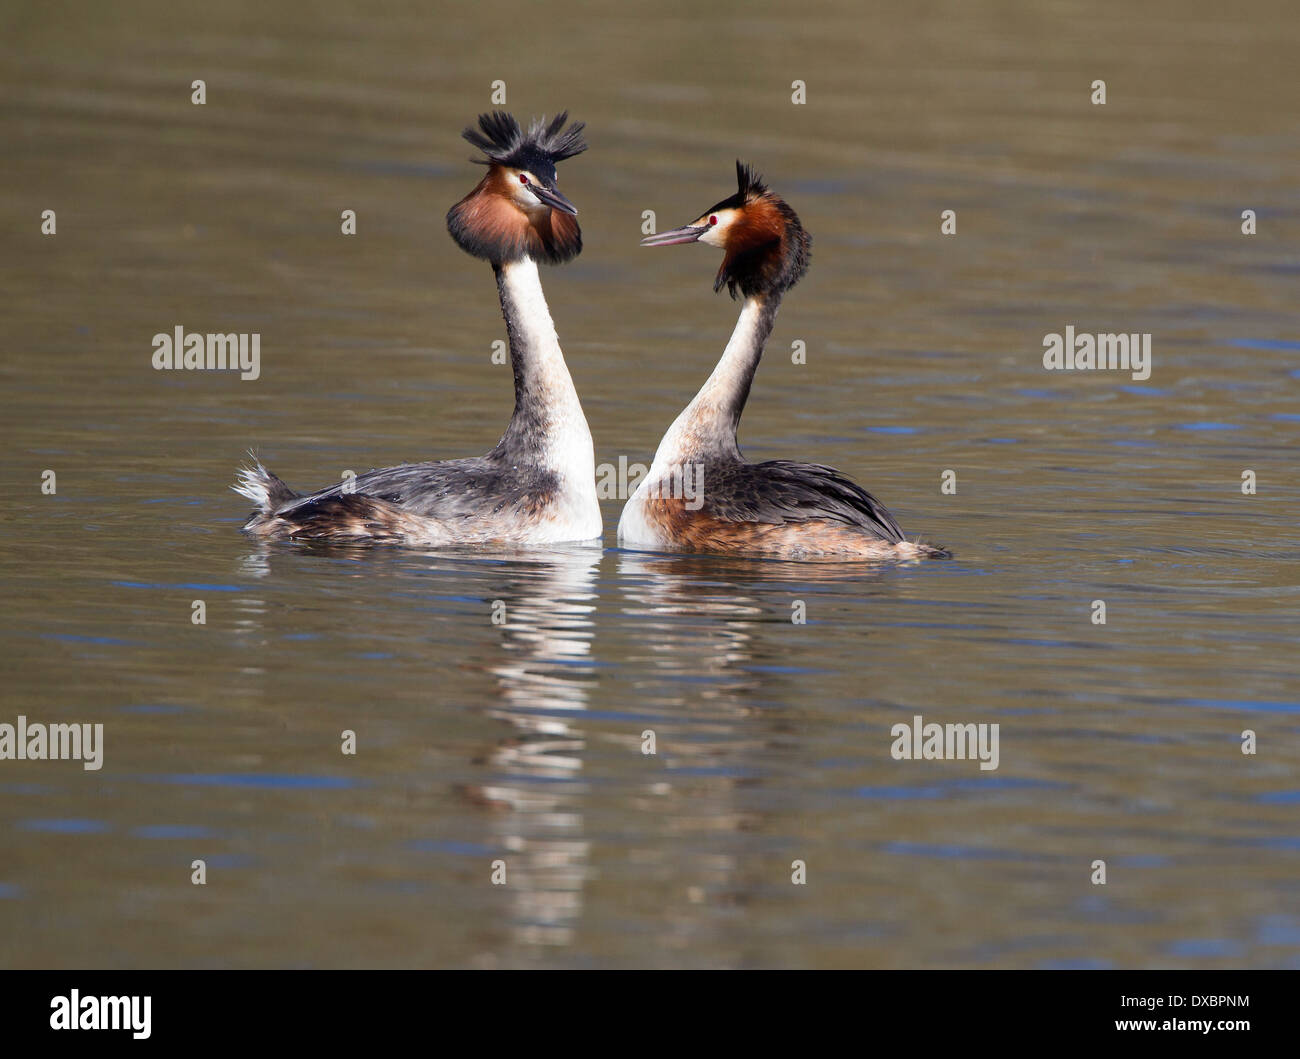 Pair of great crested grebes in courtship display; - Stock Image